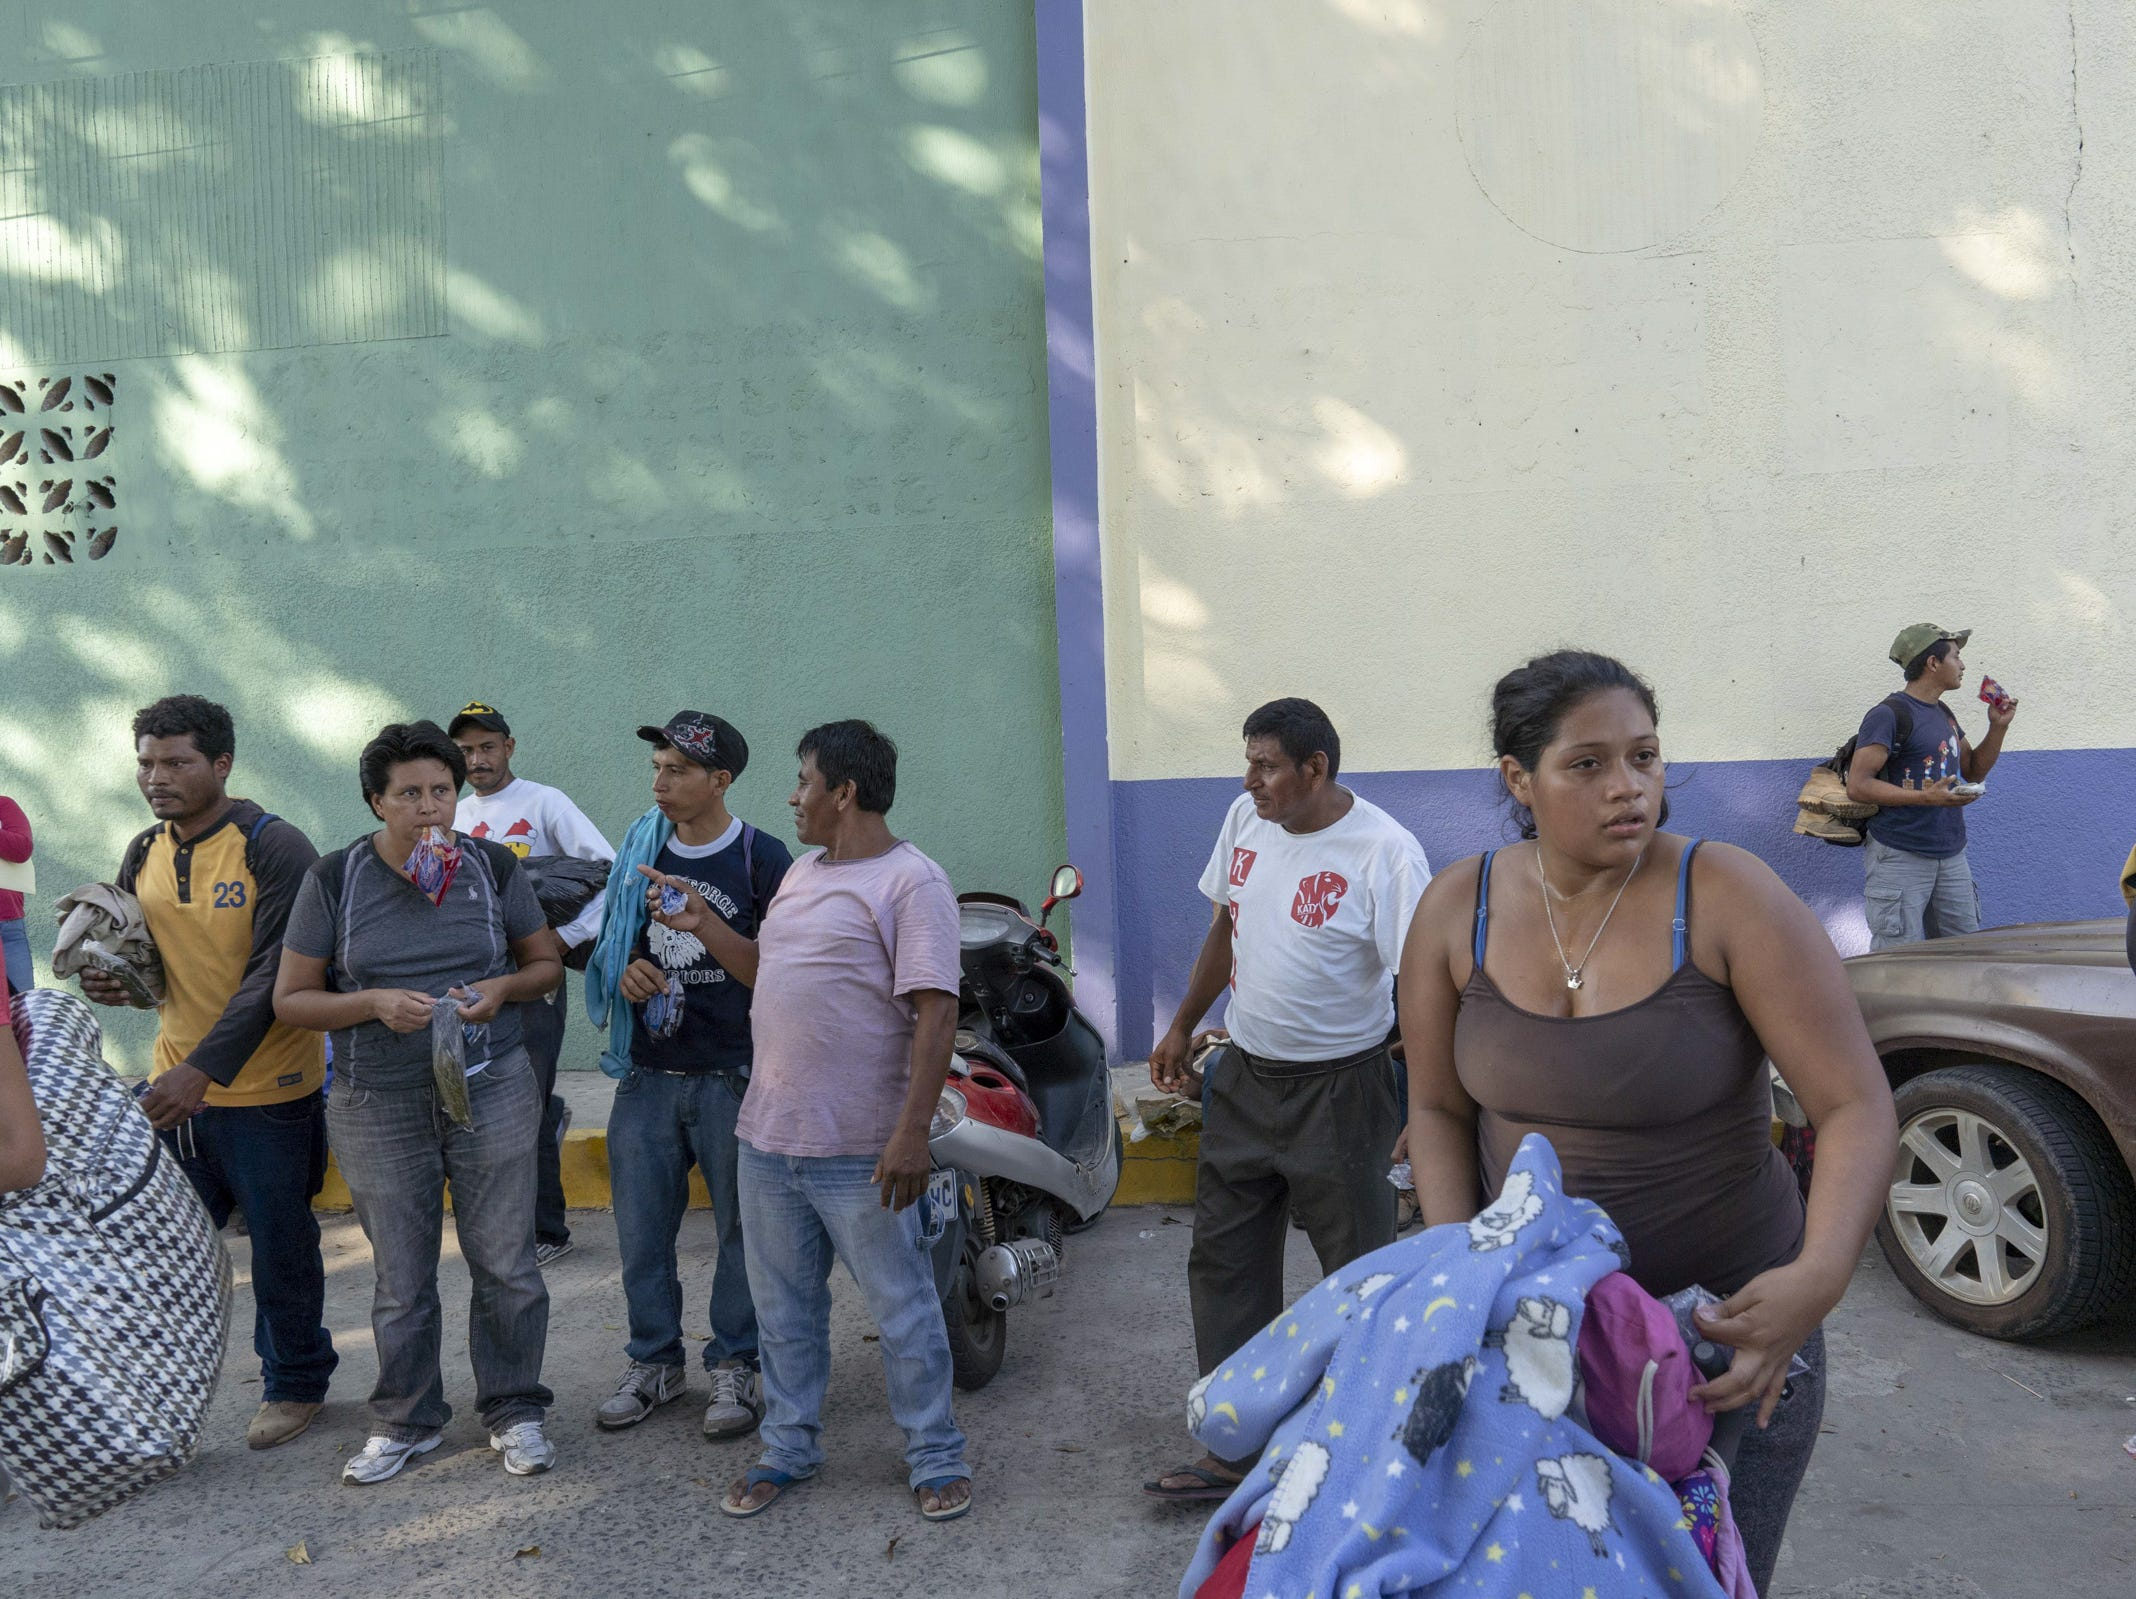 Migrants from Honduras and El Salvador gather near a park in Tecun Uman, Guatemala, on Oct. 25, 2018, as they wait to cross from Guatemala to Mexico and then head north to the United States.